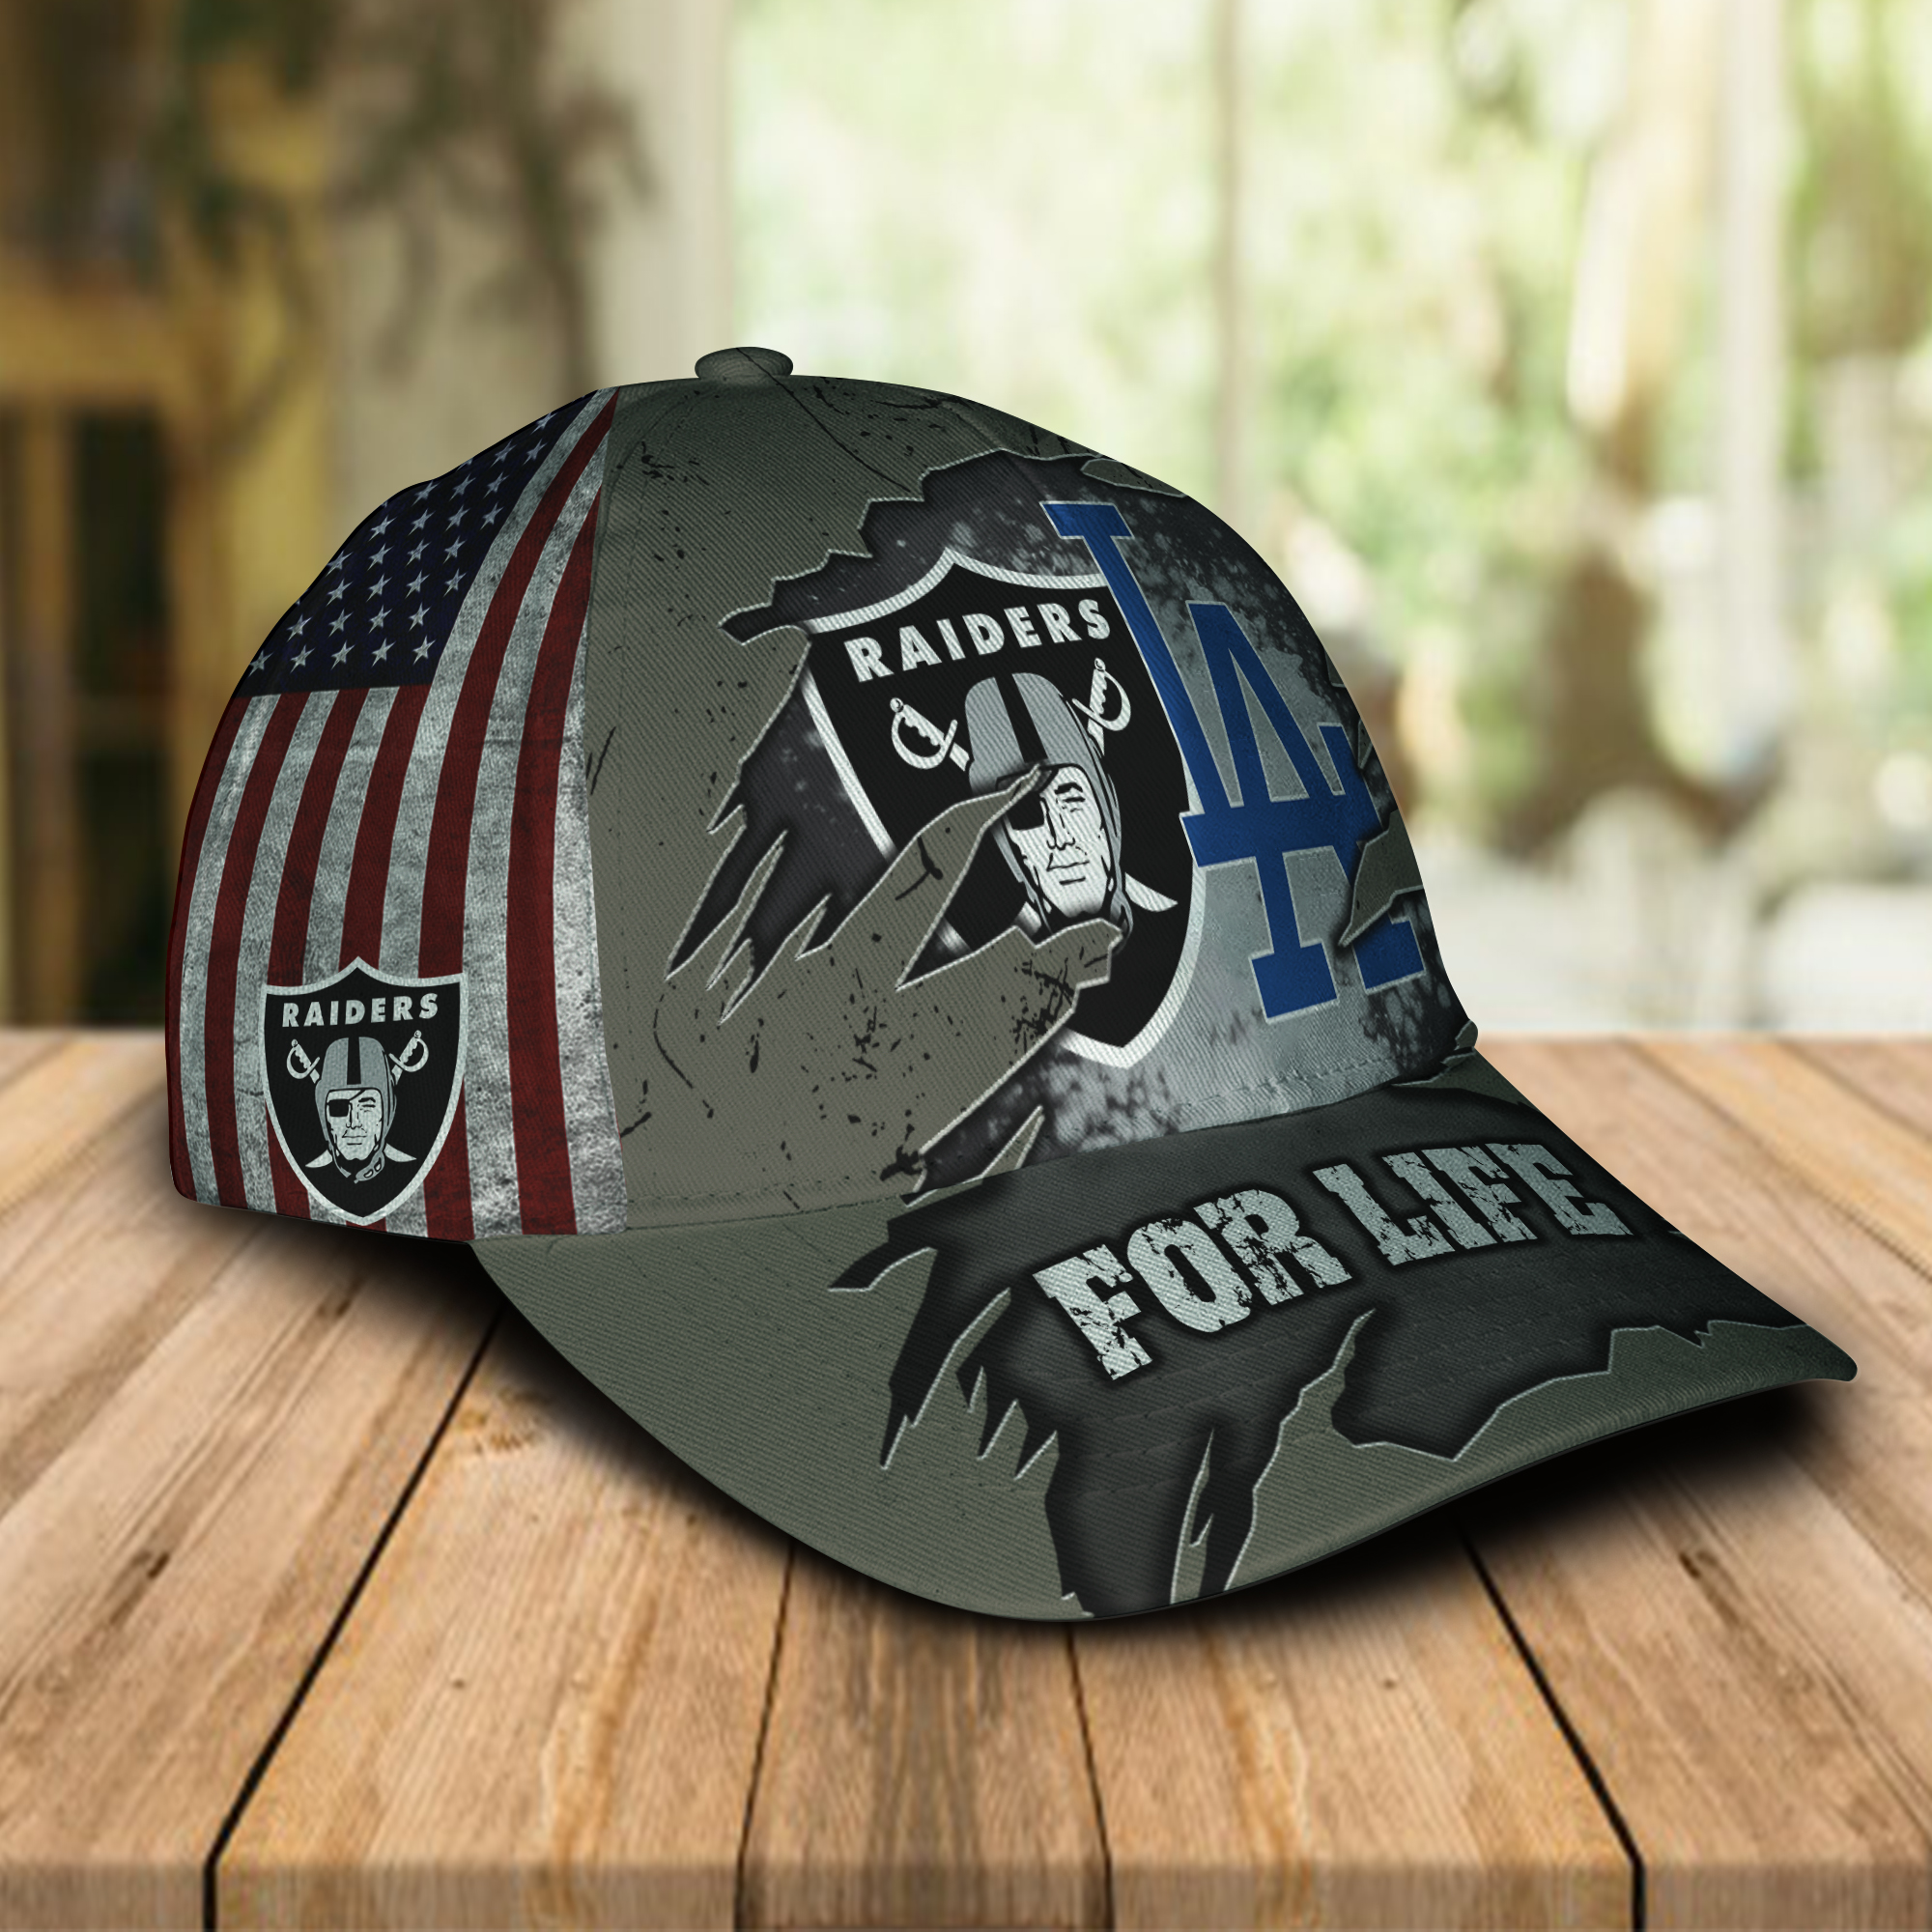 Las Vegas Raiders And Los Angeles Dodgers For Life Cap 2